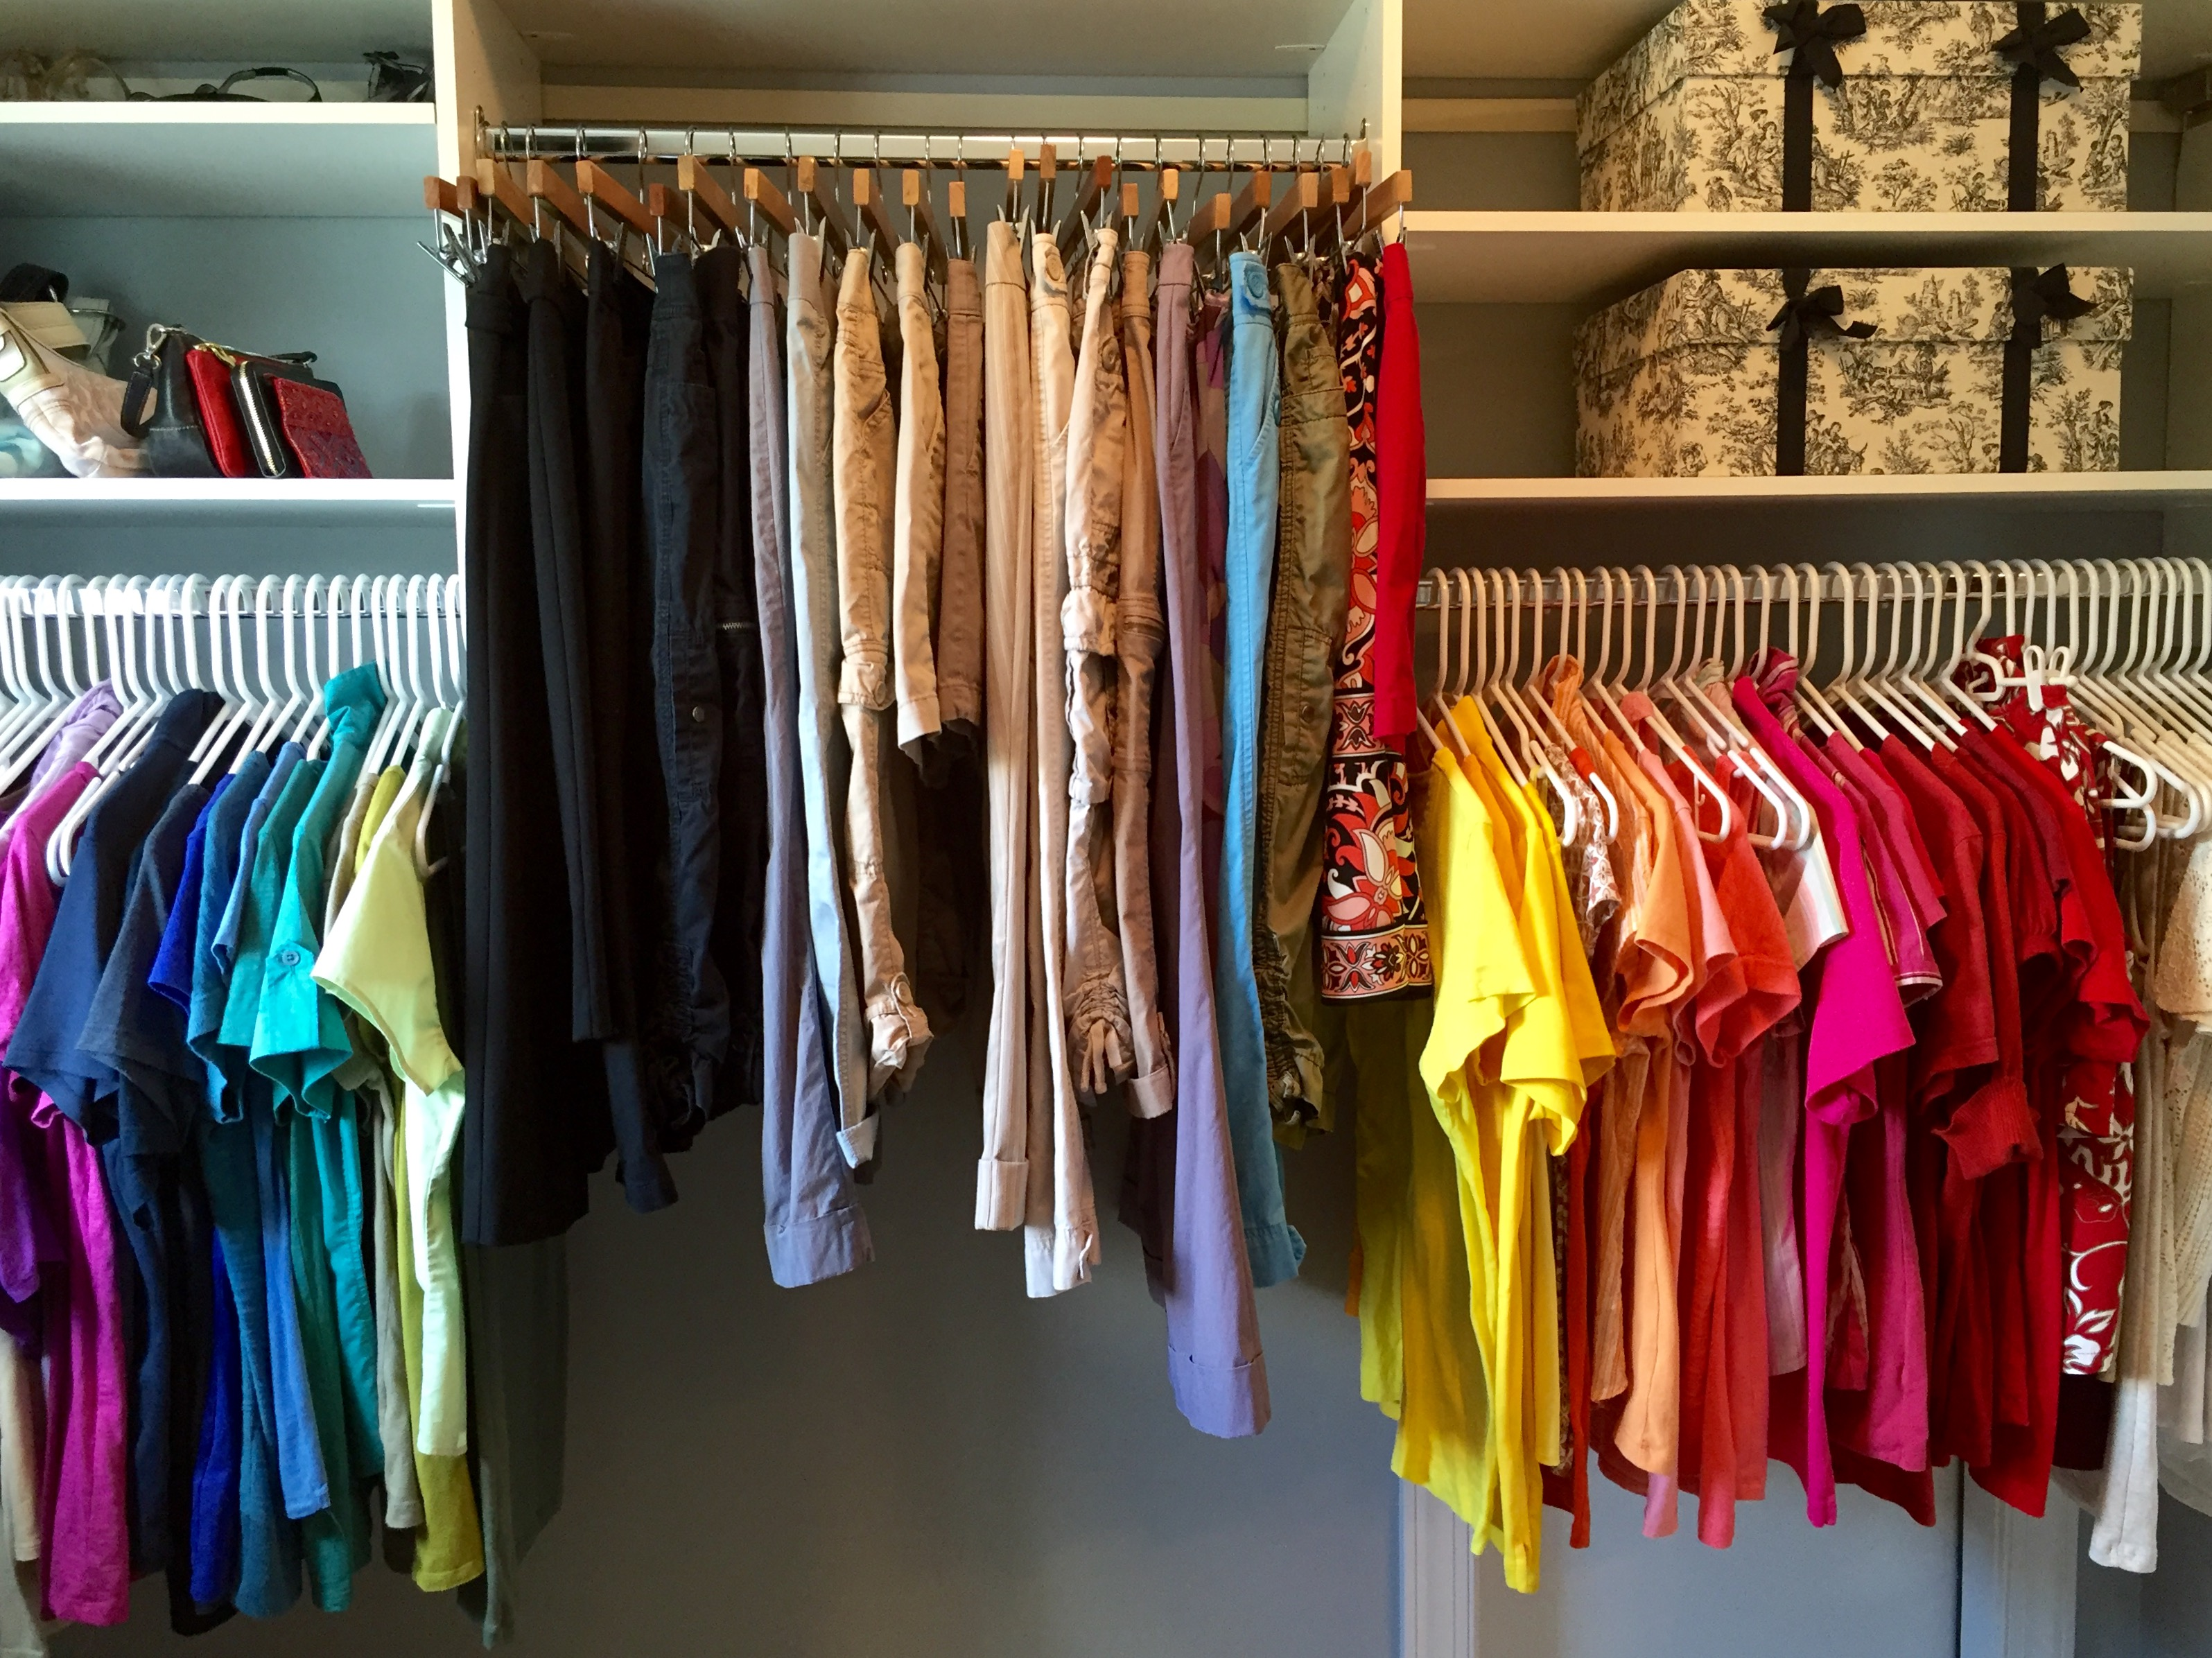 Spring Cleaning Project-Clean and Organize Your Closet